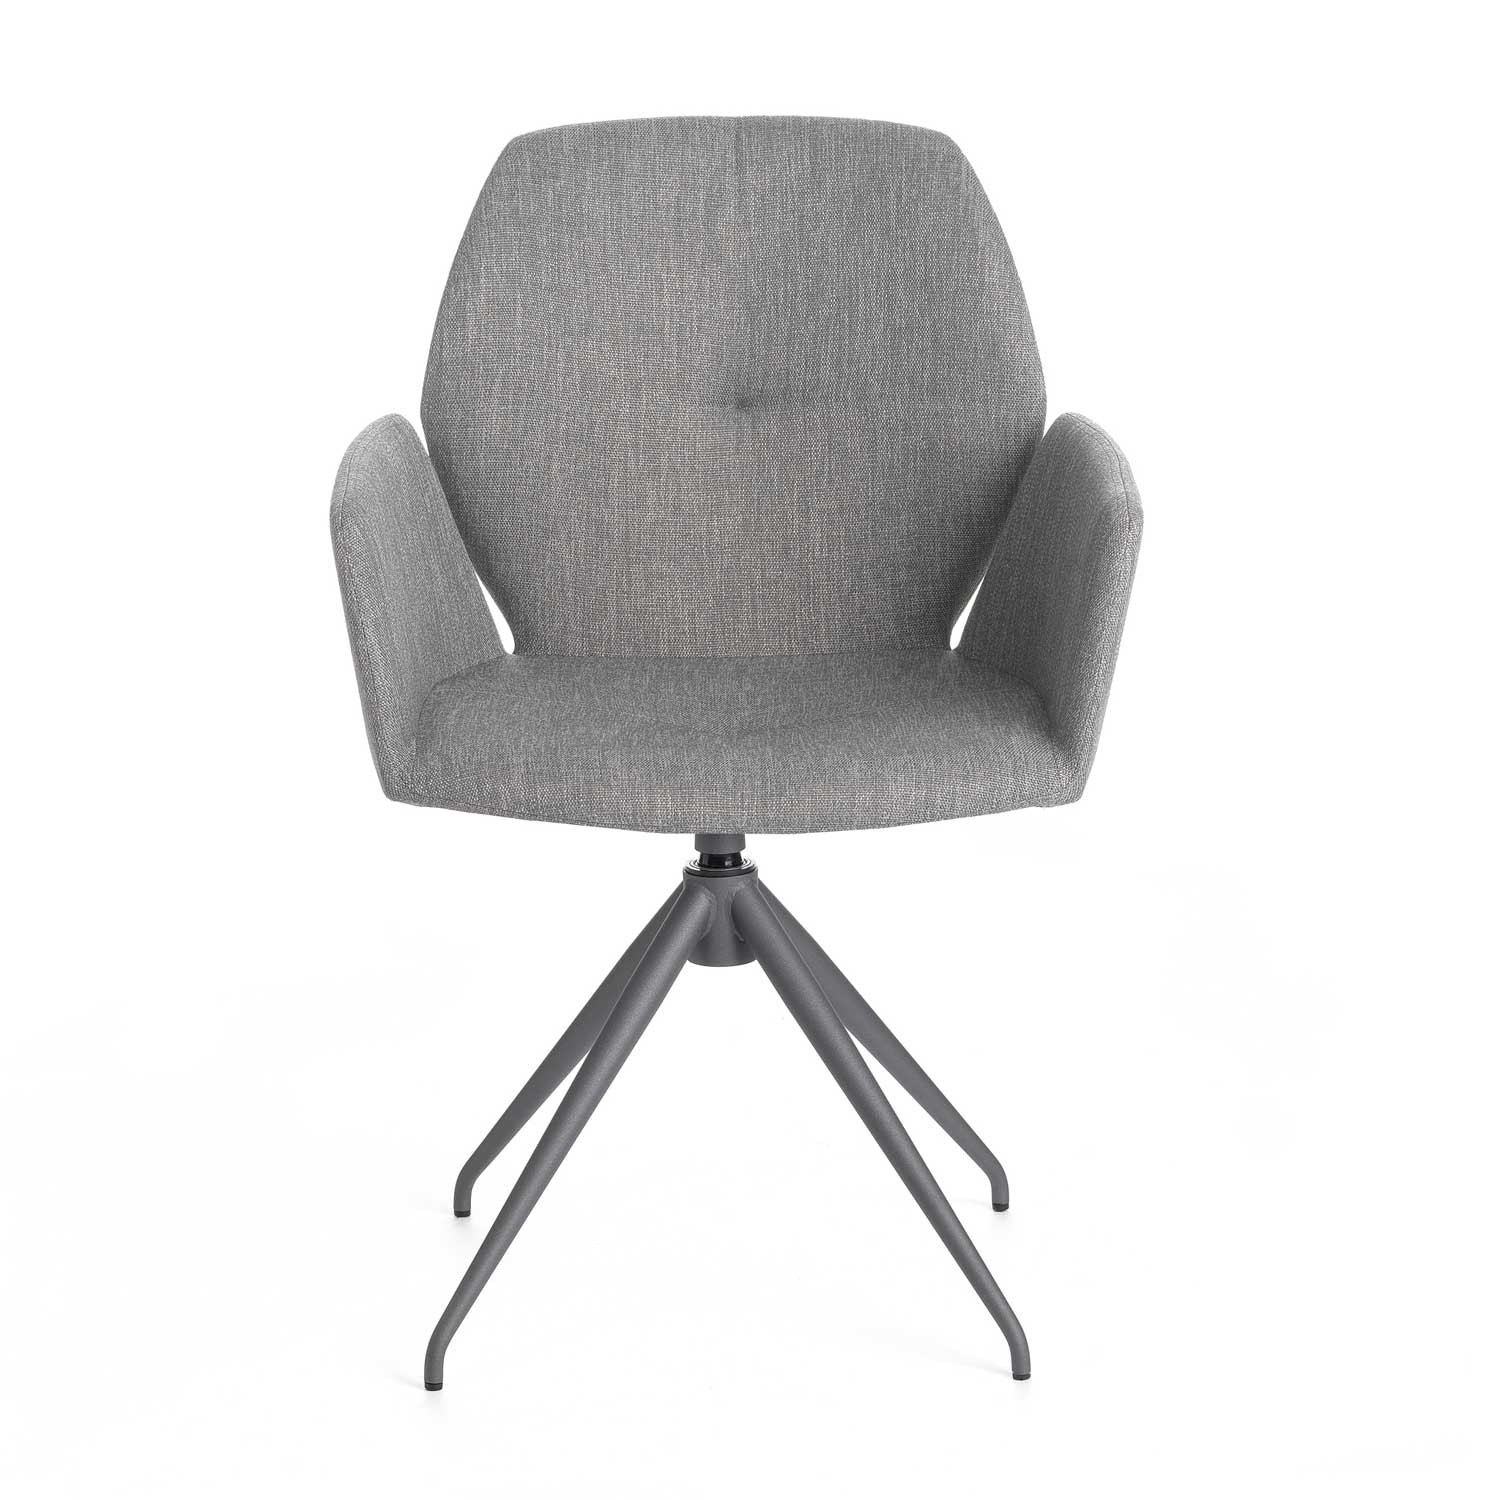 Jay 95 Swivel Chair | Aif London With Regard To Grey Swivel Chairs (View 25 of 25)